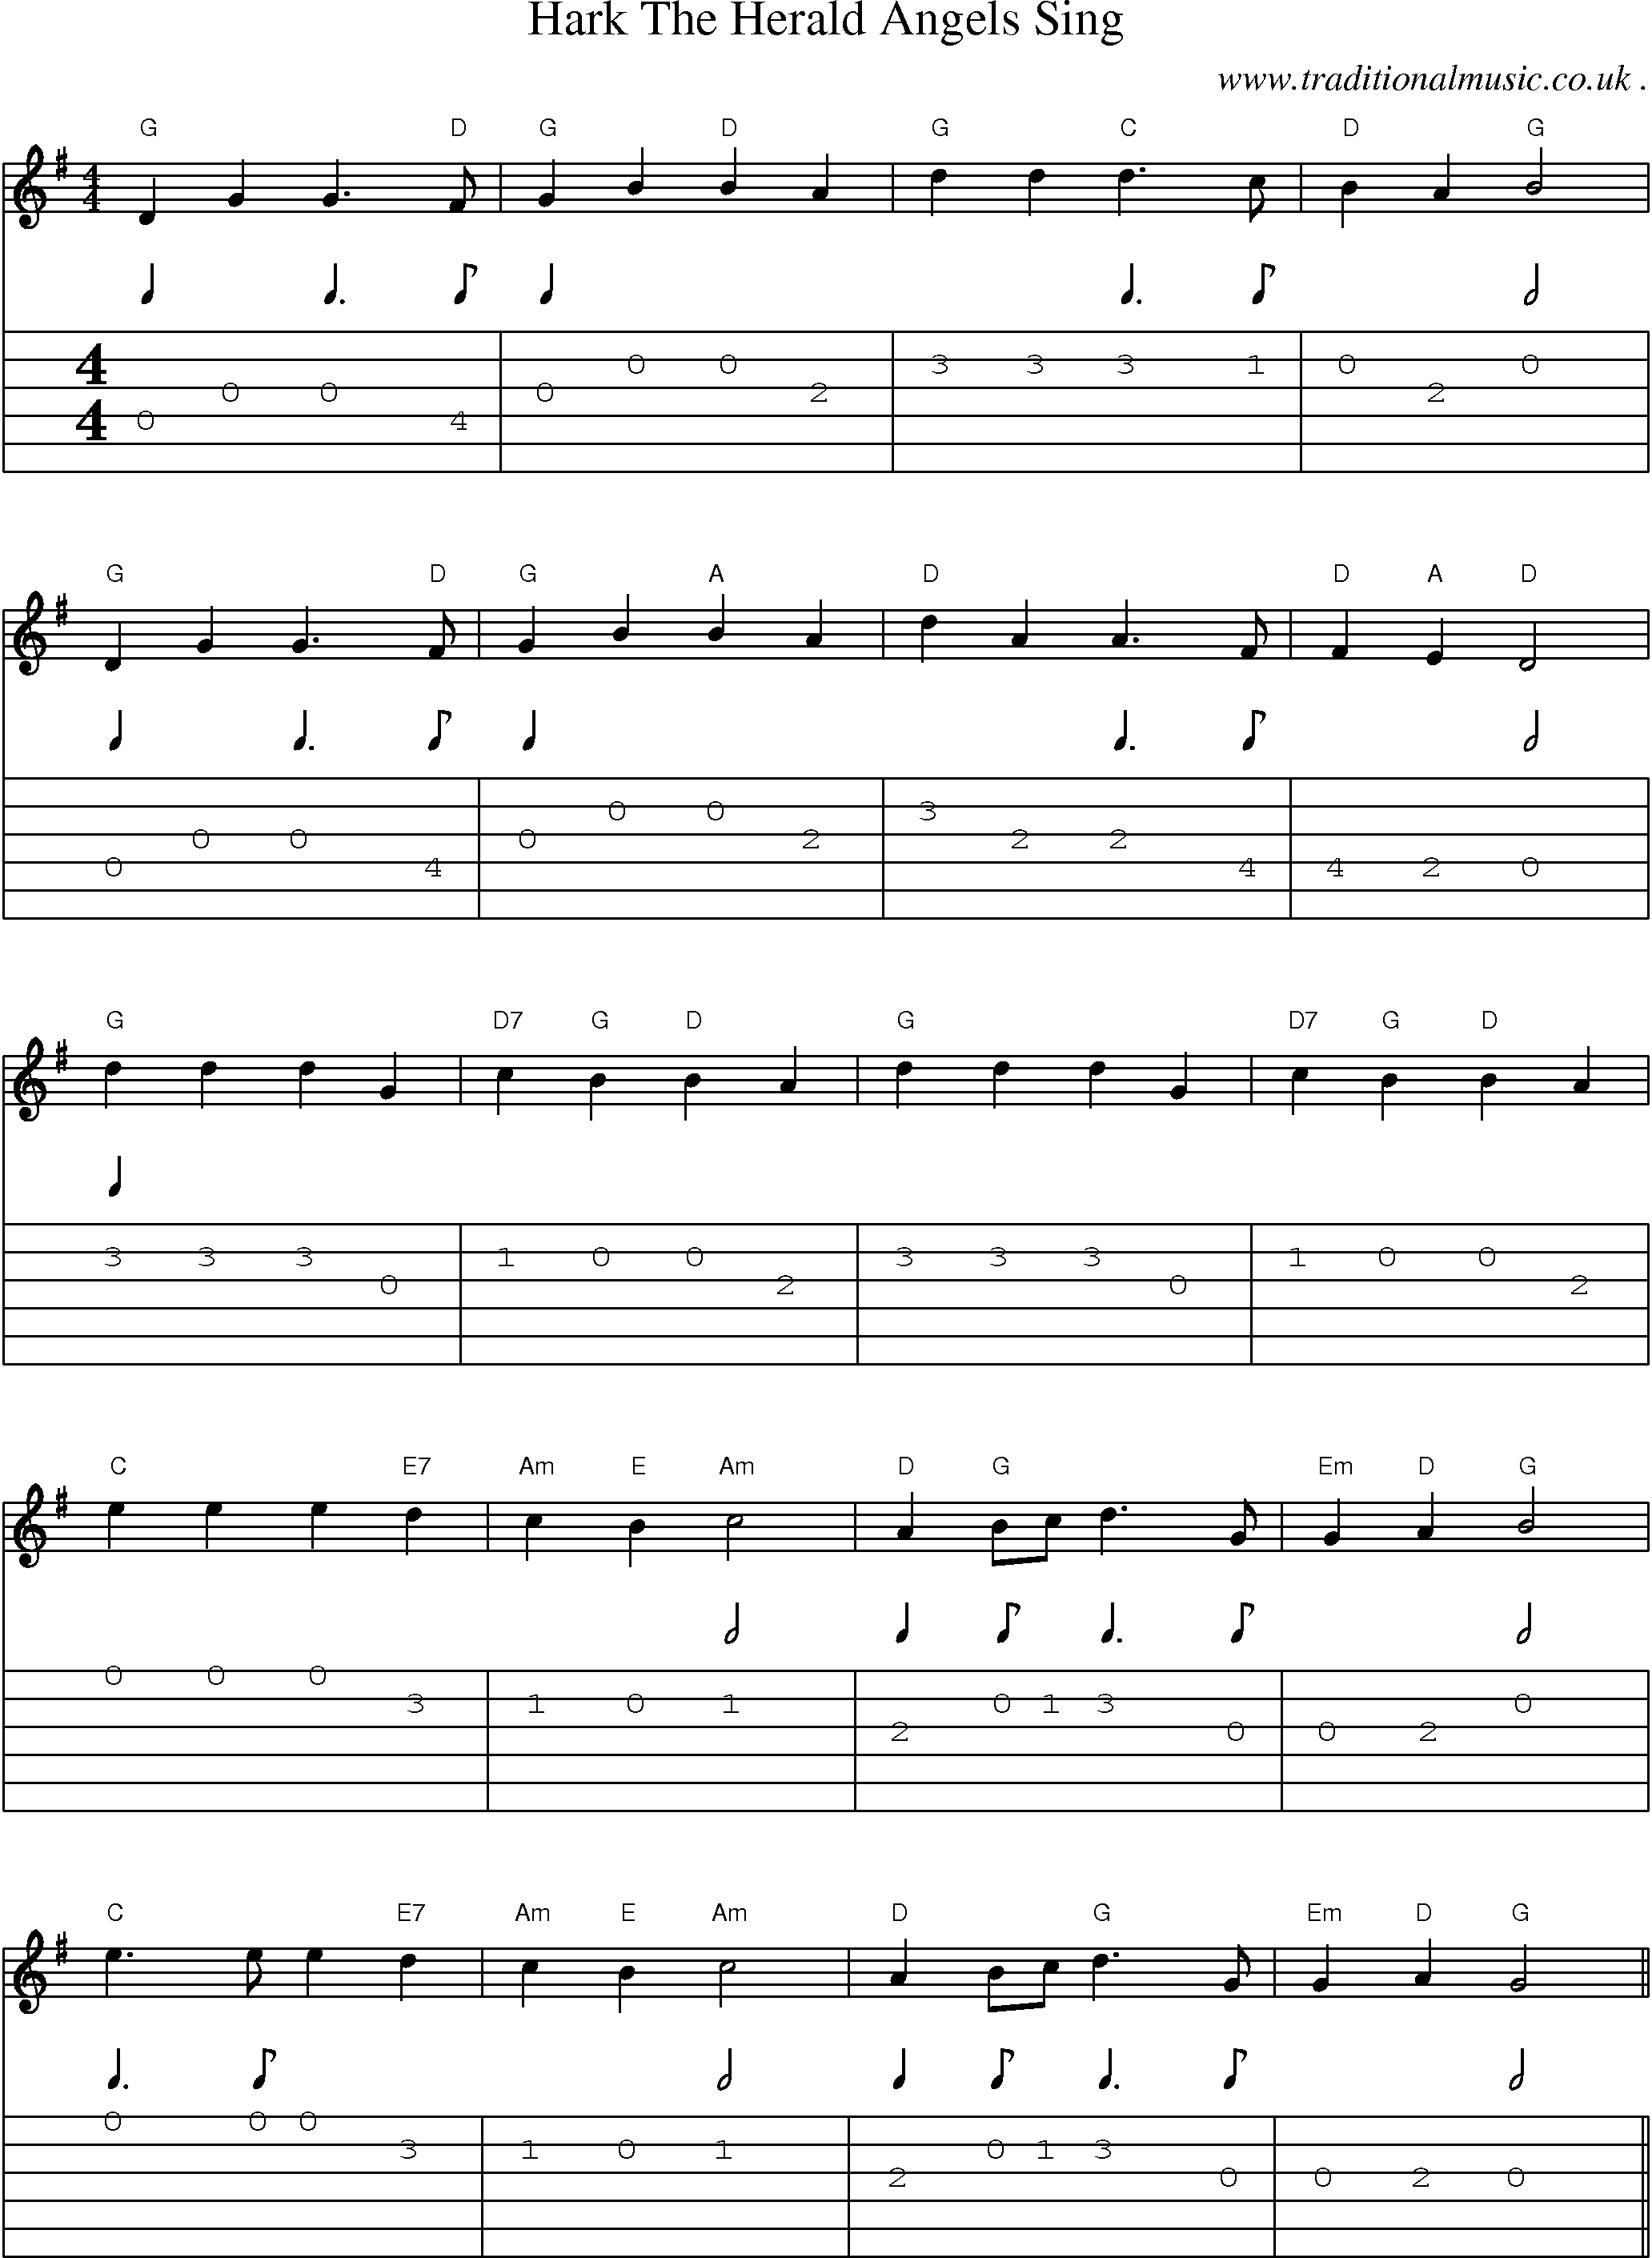 Music score and guitar tabs for hark the herald angels sing common session tunes scores and tabs for guitar hark the herald angels sing hexwebz Gallery